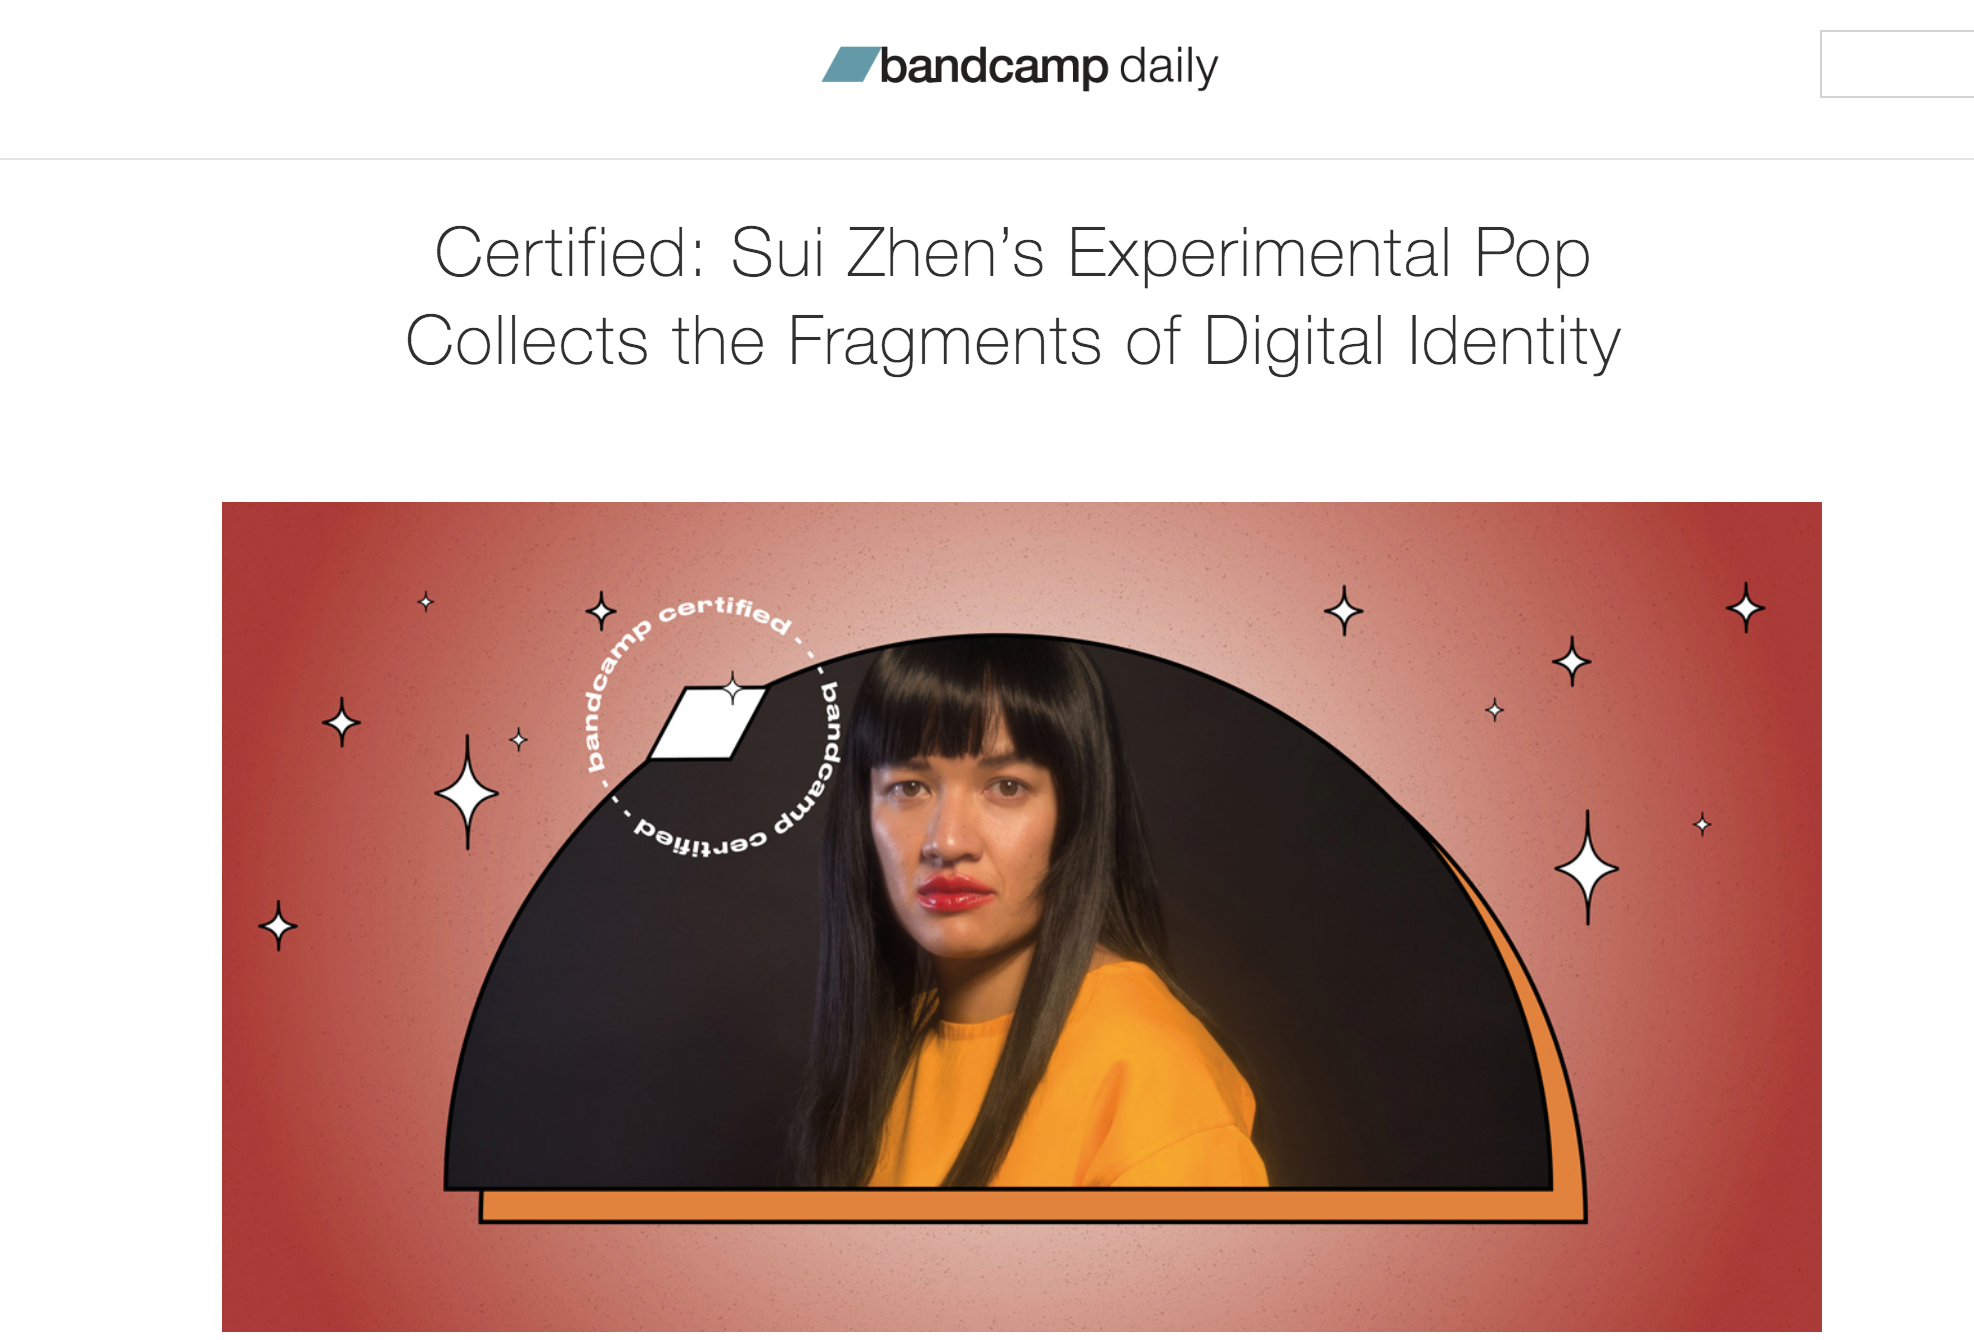 Bandcamp Certified - Interview for Bandcamp Daily by Martyn Pepperell